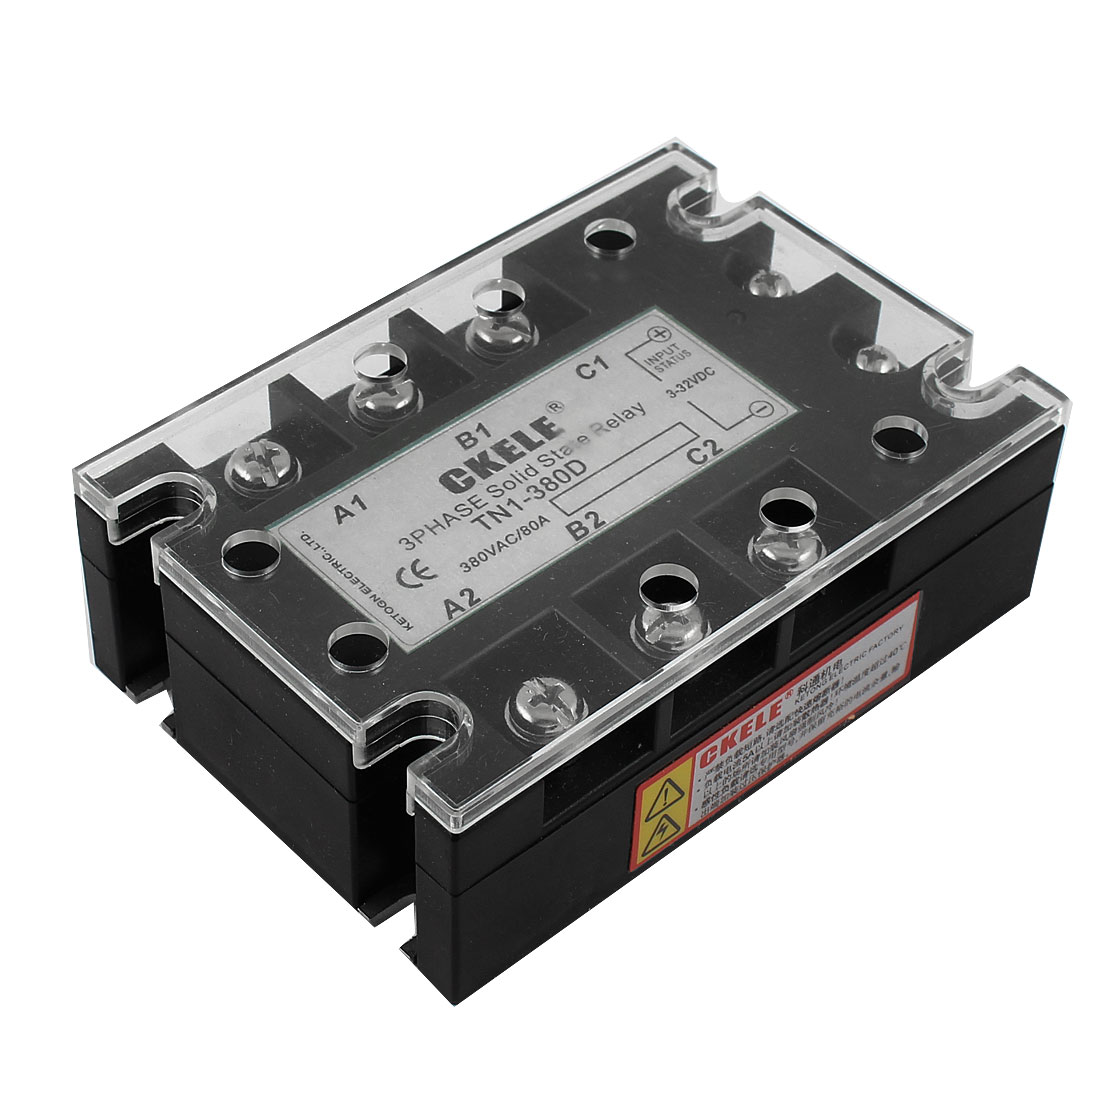 Panel Mounted 3 Phase SSR Solid State Relay DC 3-32V AC 380V 80A TN1/380D